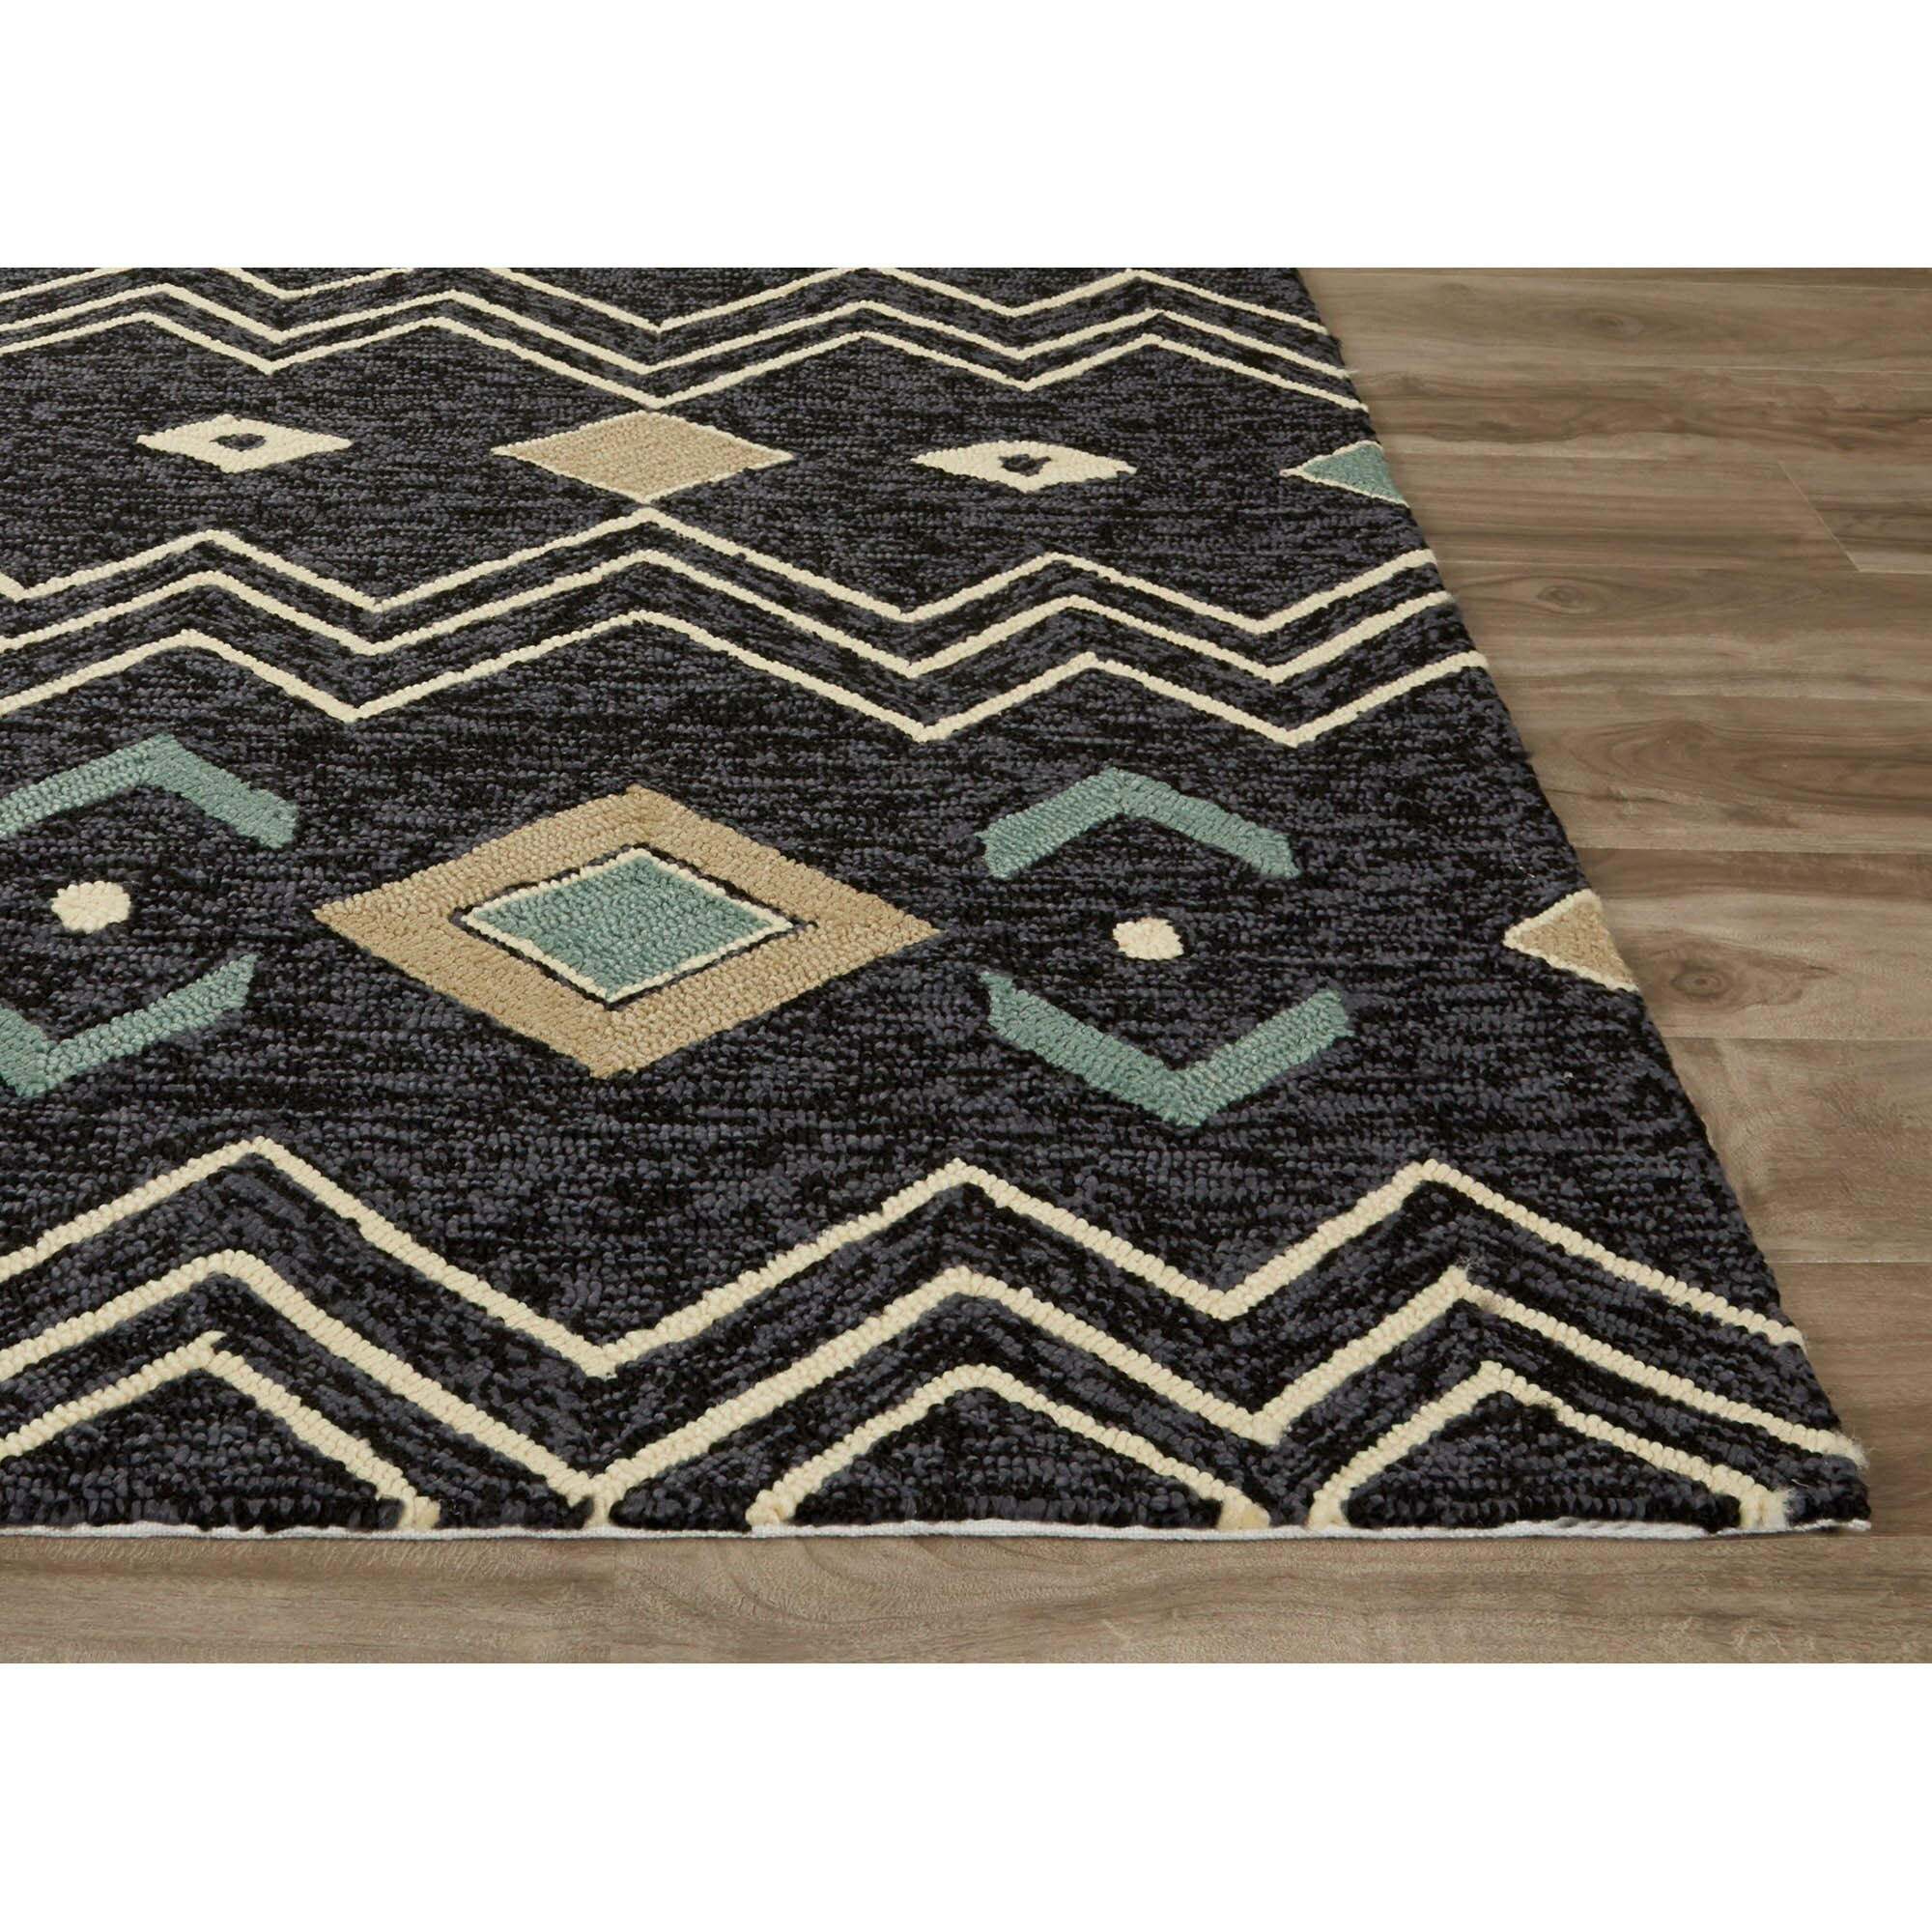 Jaipurliving catalina black white indoor outdoor area rug for Indoor out door rugs